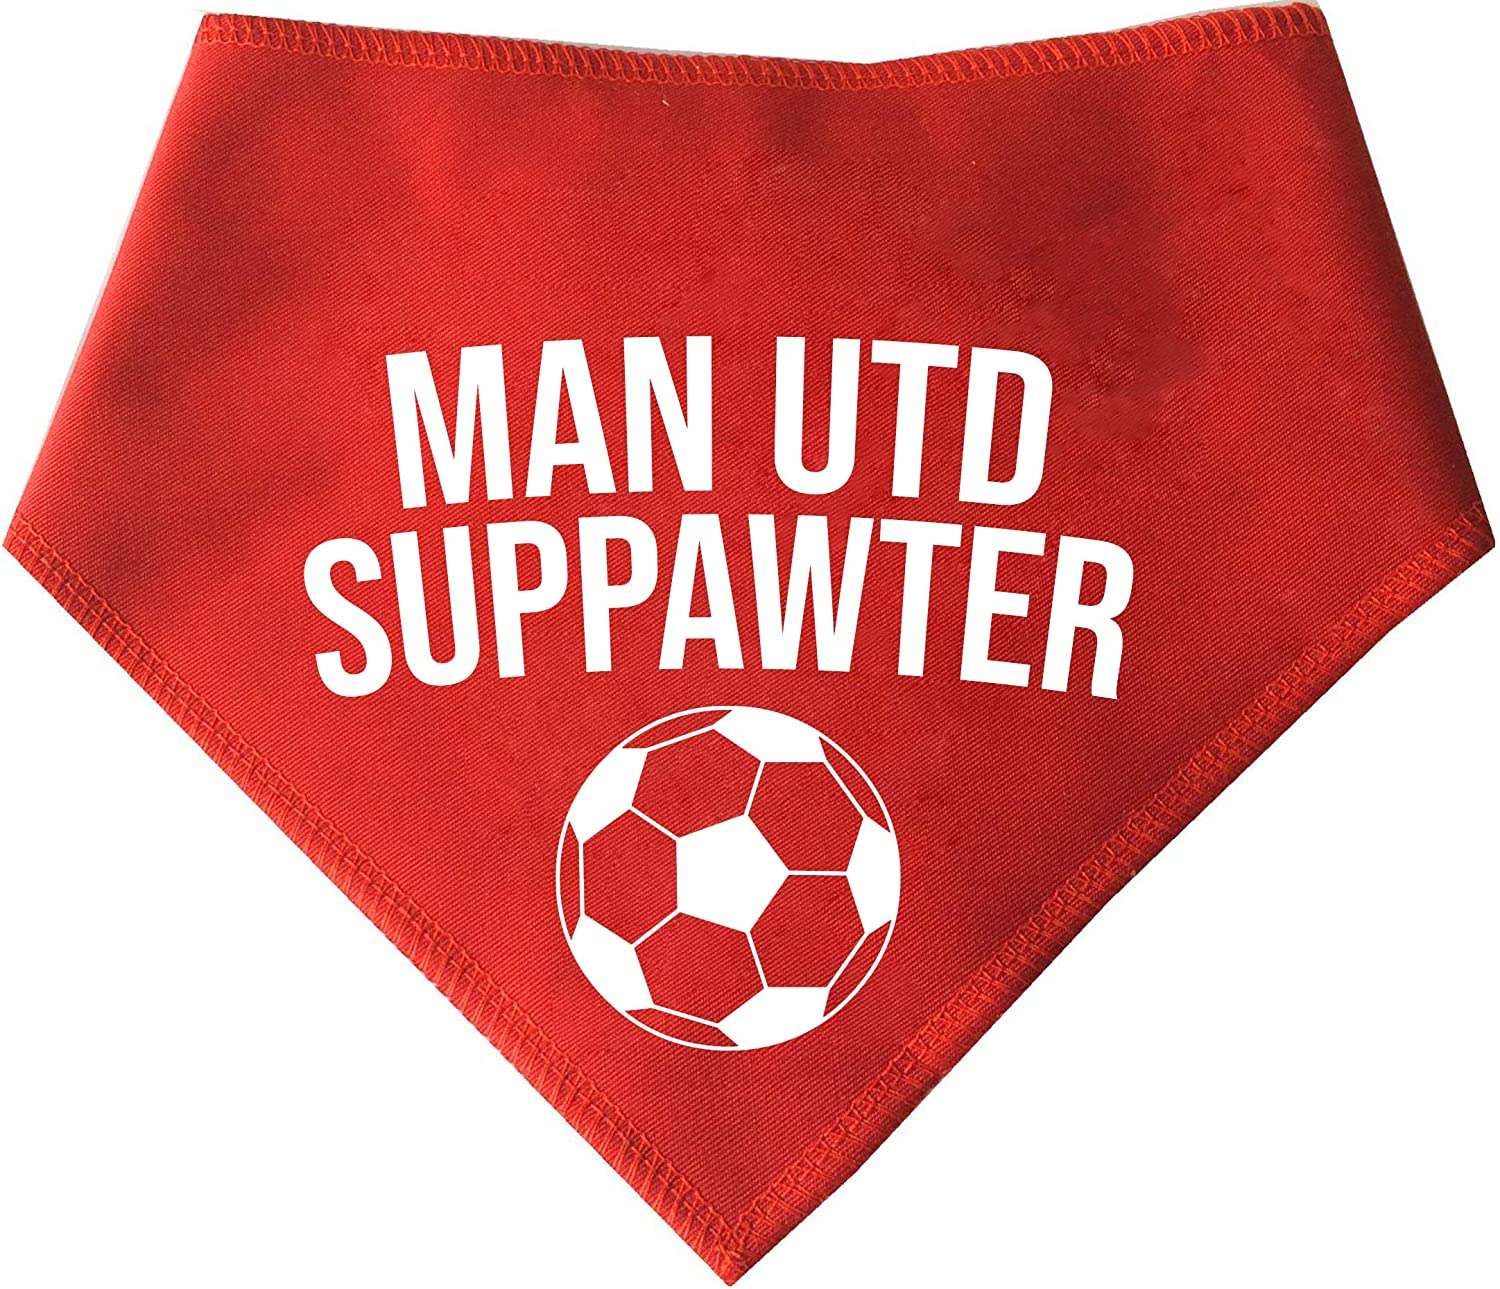 Westies Terriers /& Cockerpoo Sized Dogs Suitable For Shih-tzu Spoilt Rotten Pets S2 Manchester United Football Club Suppawter ManU Small For Dogs That Follow The Red Devils Red Dog Bandana